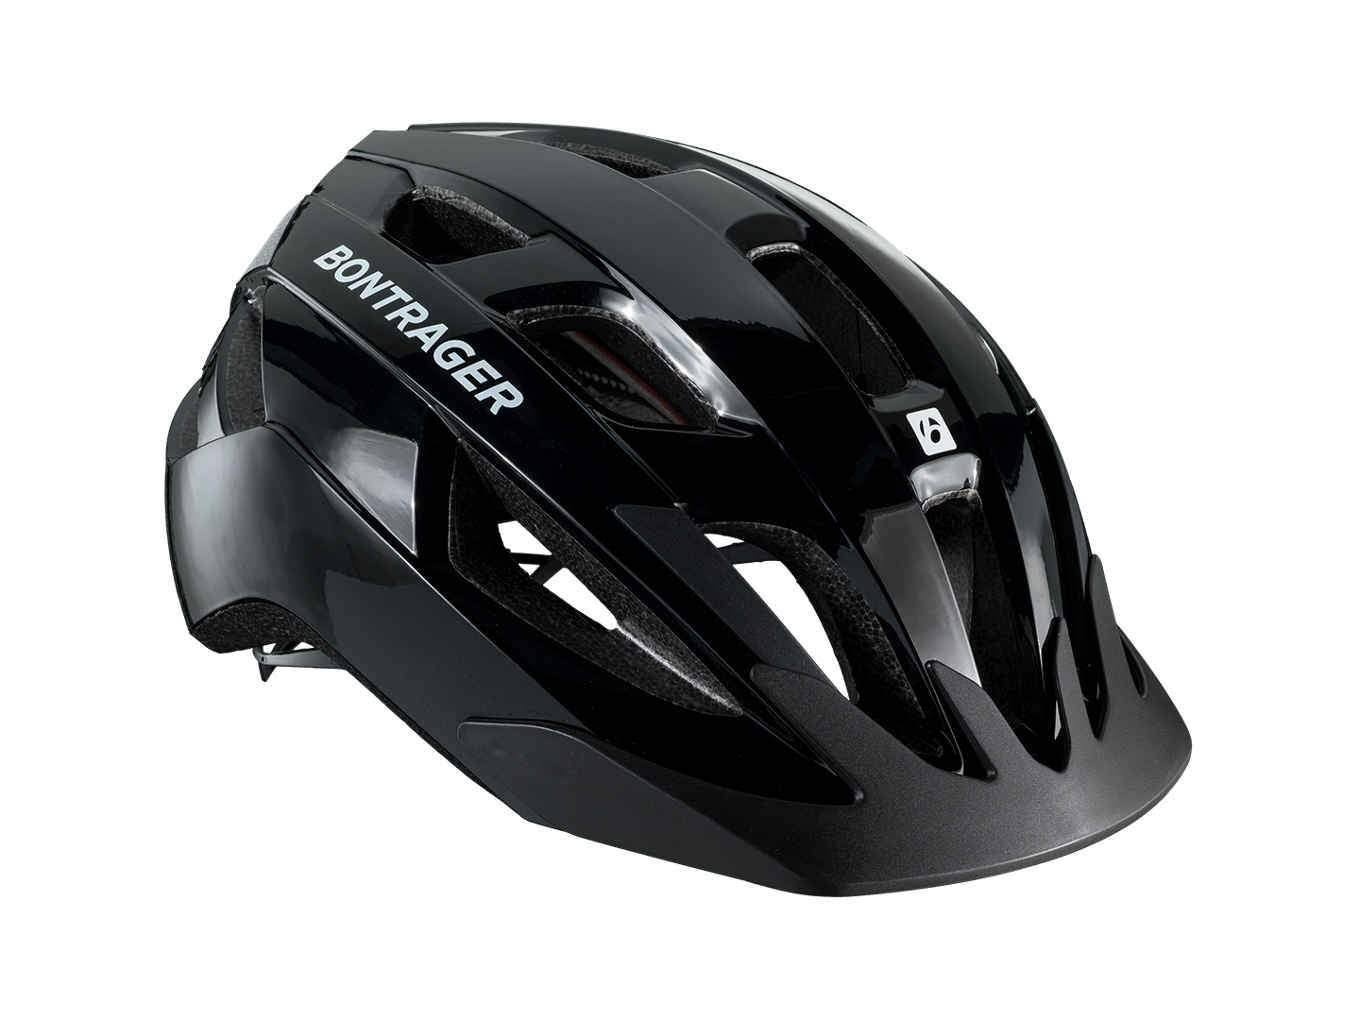 Bontrager Solstice Bike Helmet - Black - Medium/Large